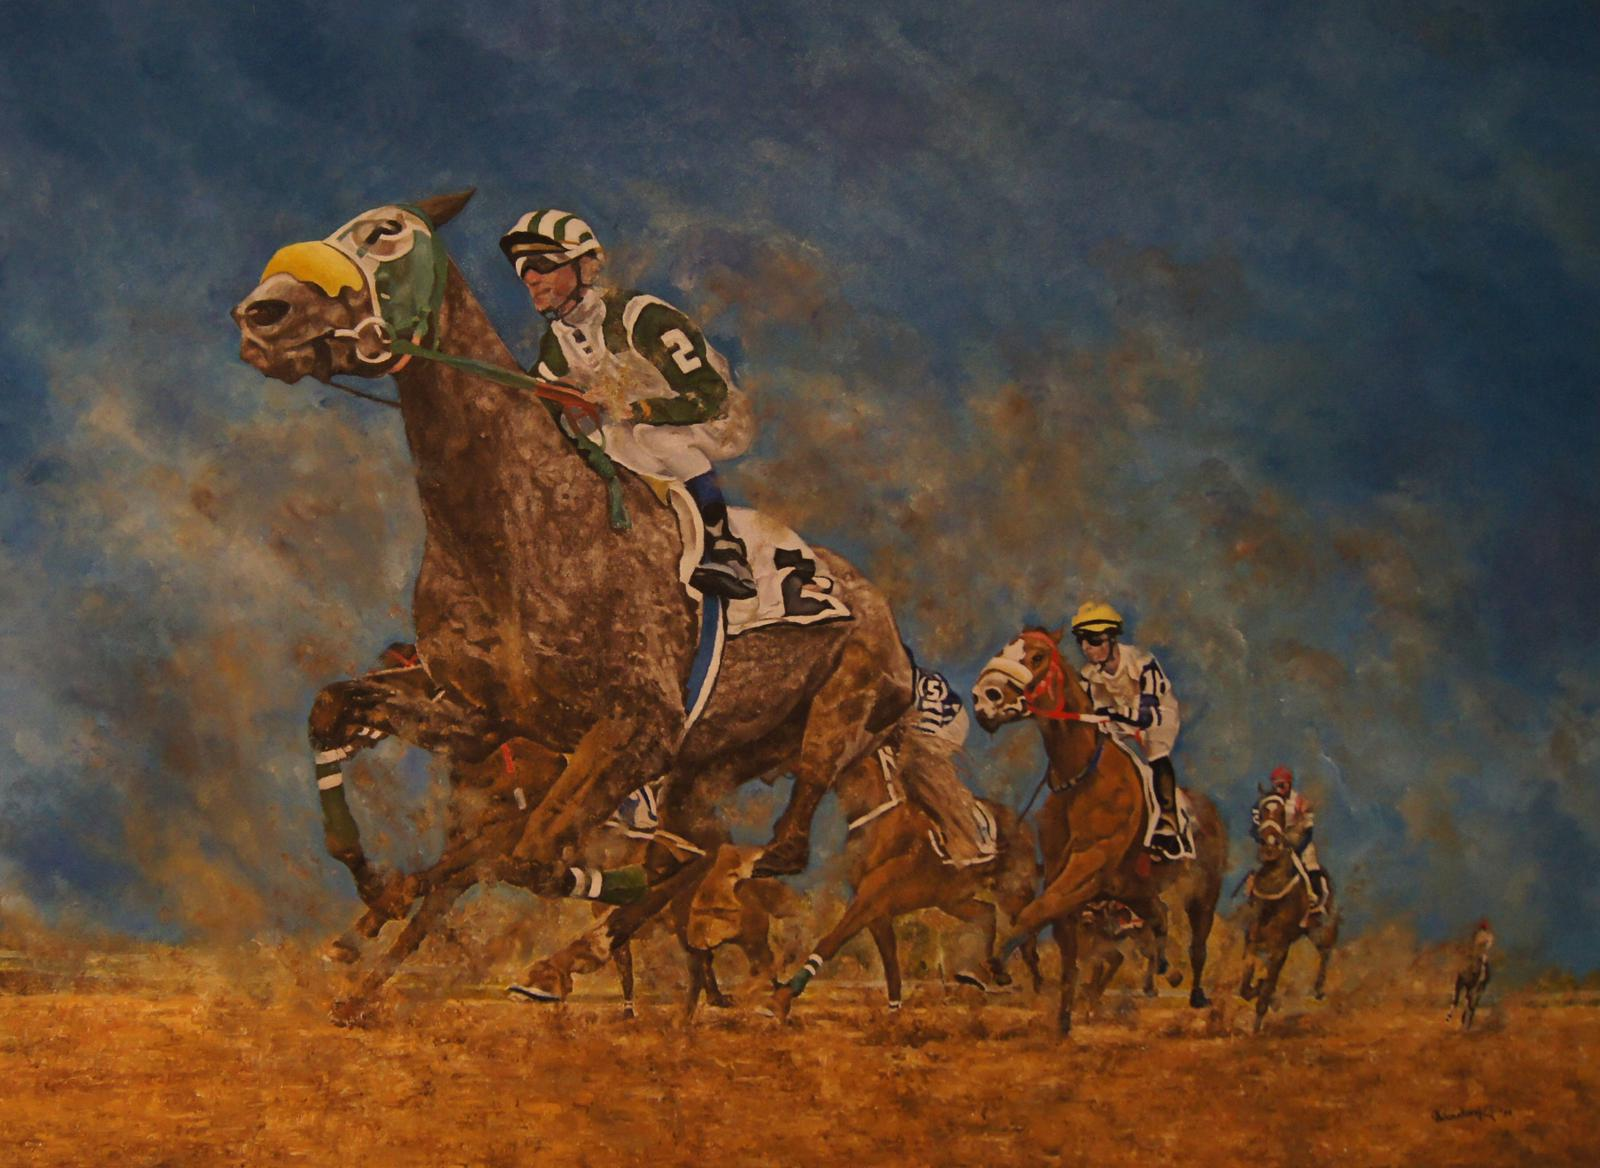 'Horseracing in Saudi Arabia'